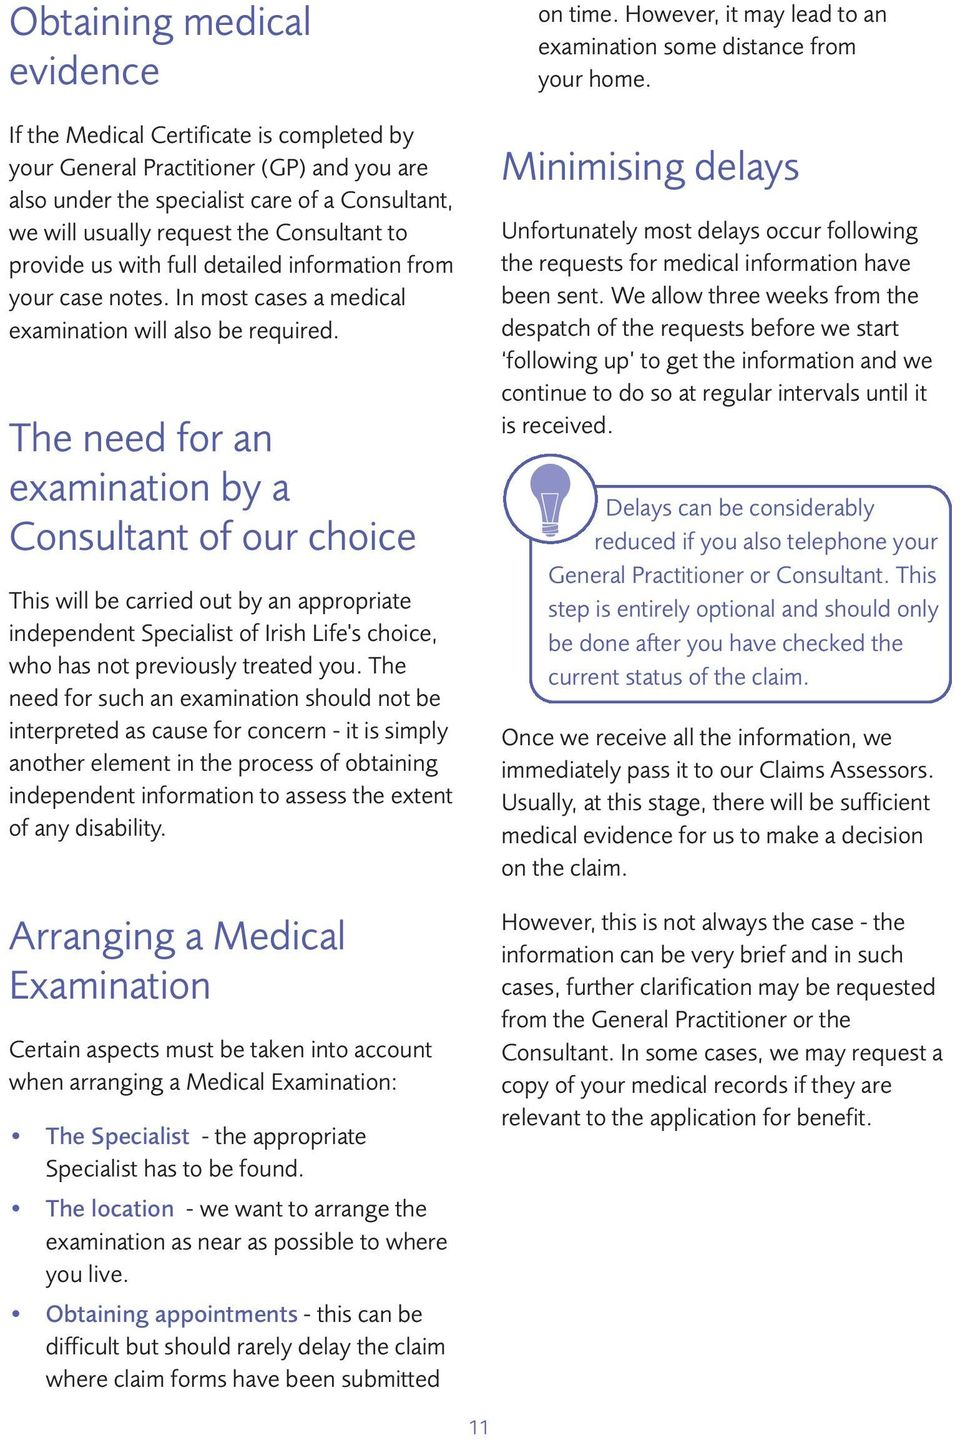 The need for an examination by a Consultant of our choice This will be carried out by an appropriate independent Specialist of Irish Life's choice, who has not previously treated you.